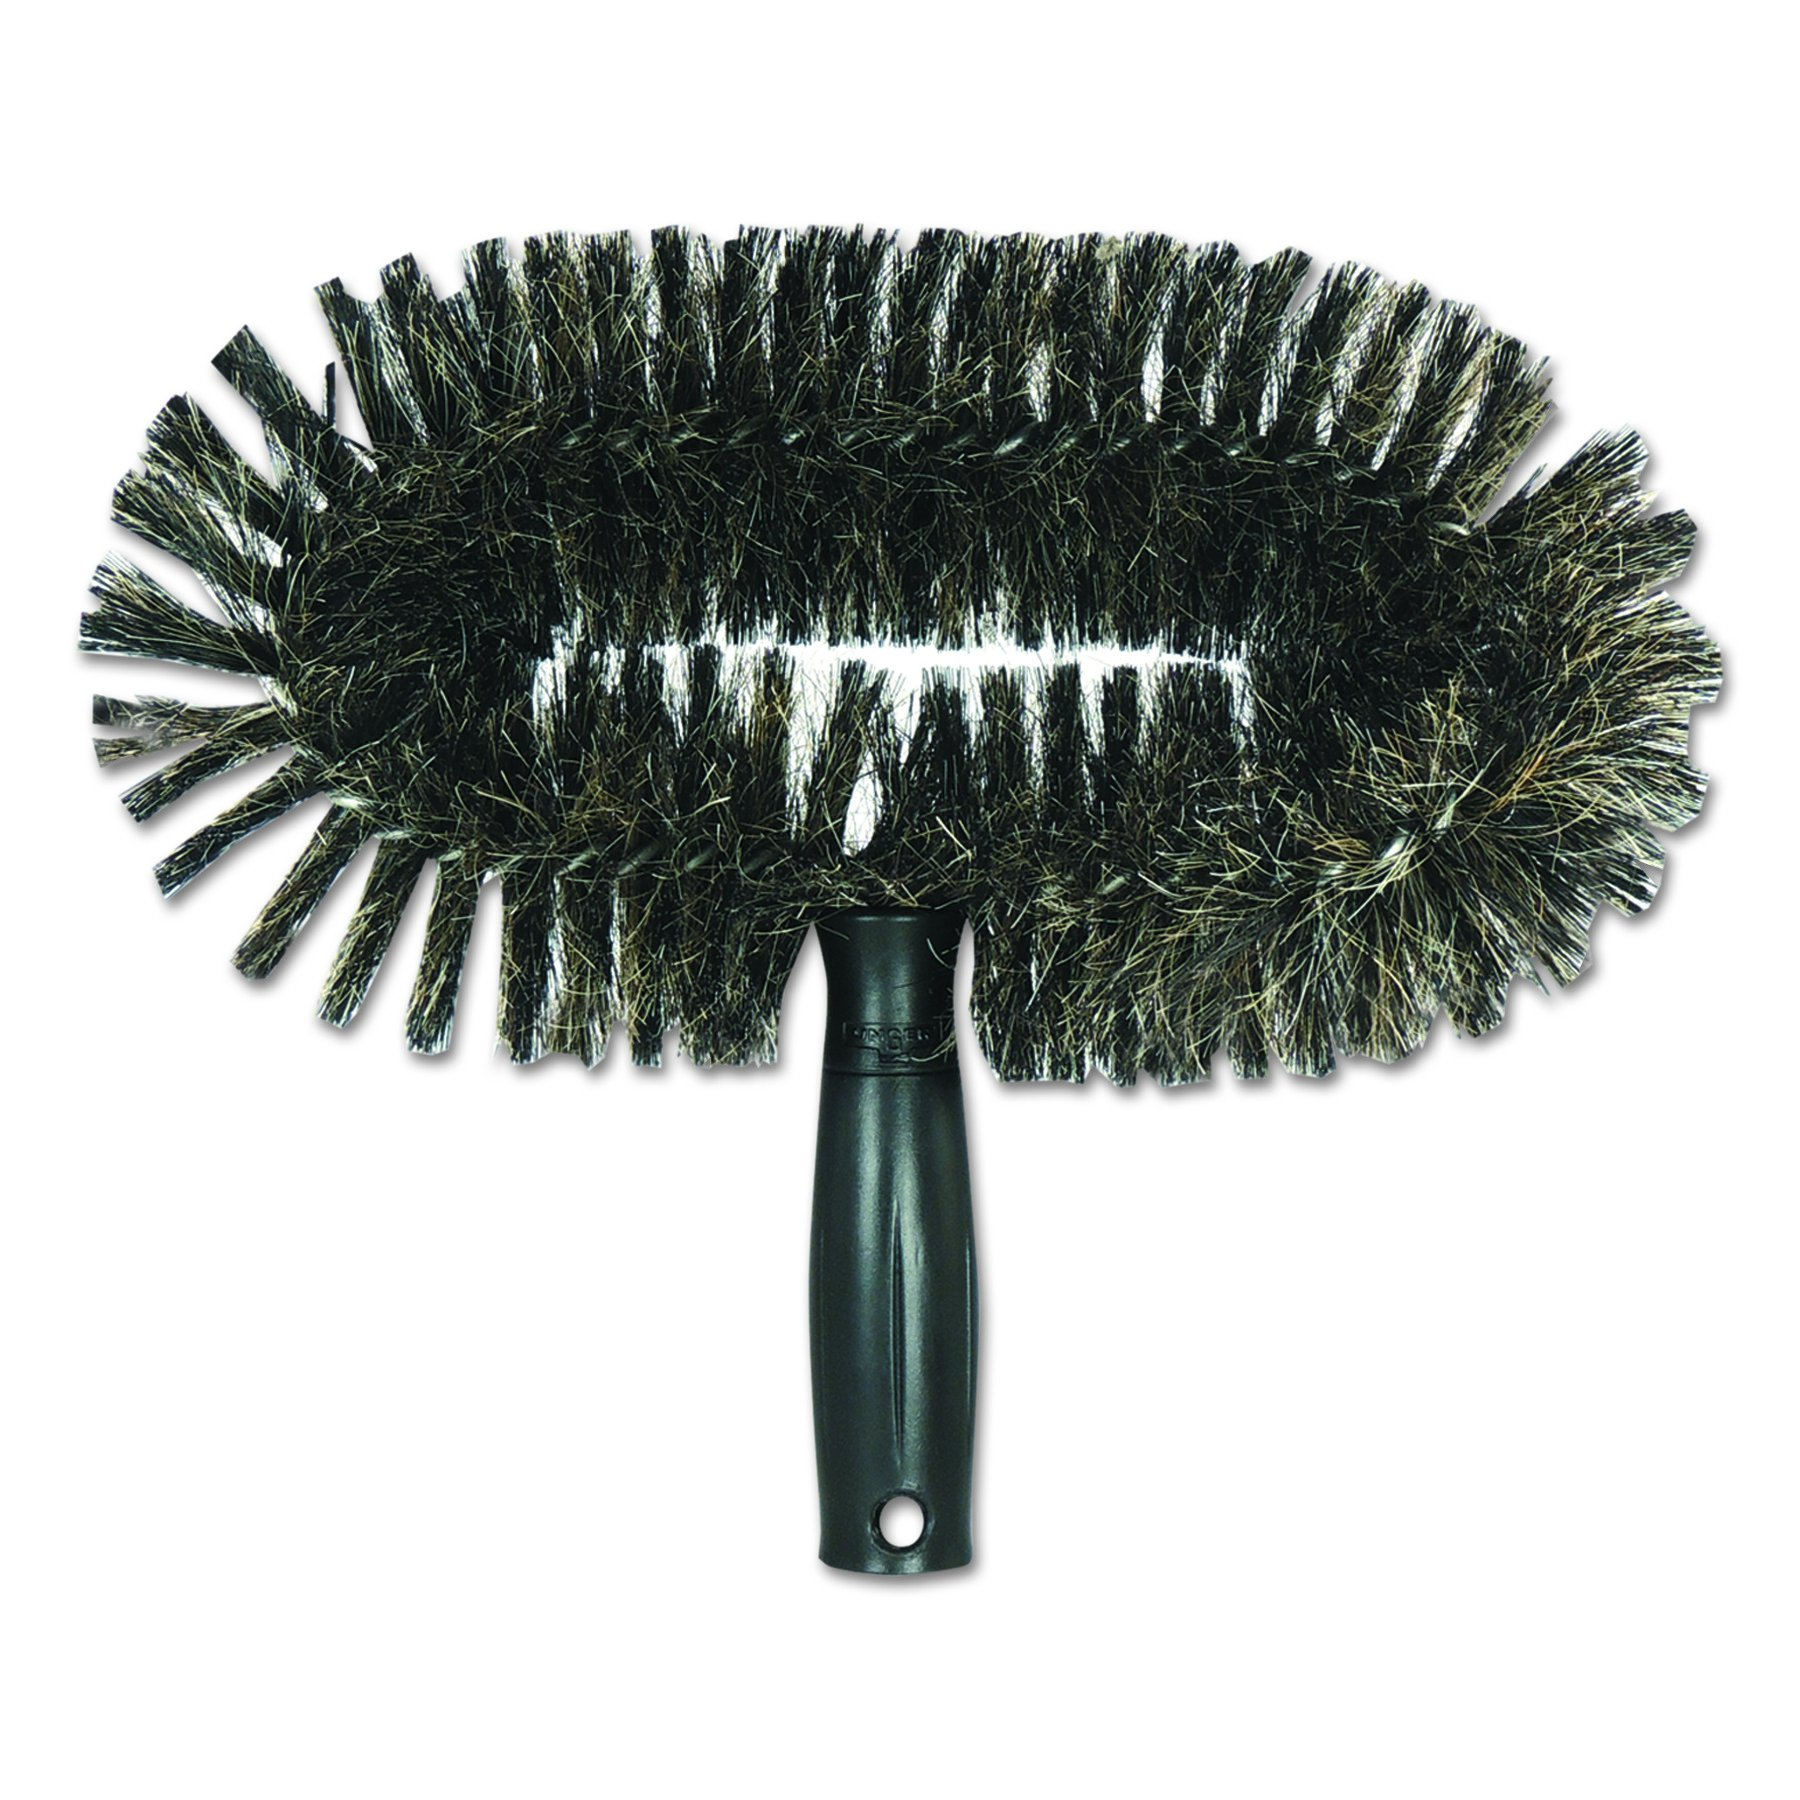 Unger WALB StarDuster WallBrush Duster, 3 1/2'' Handle